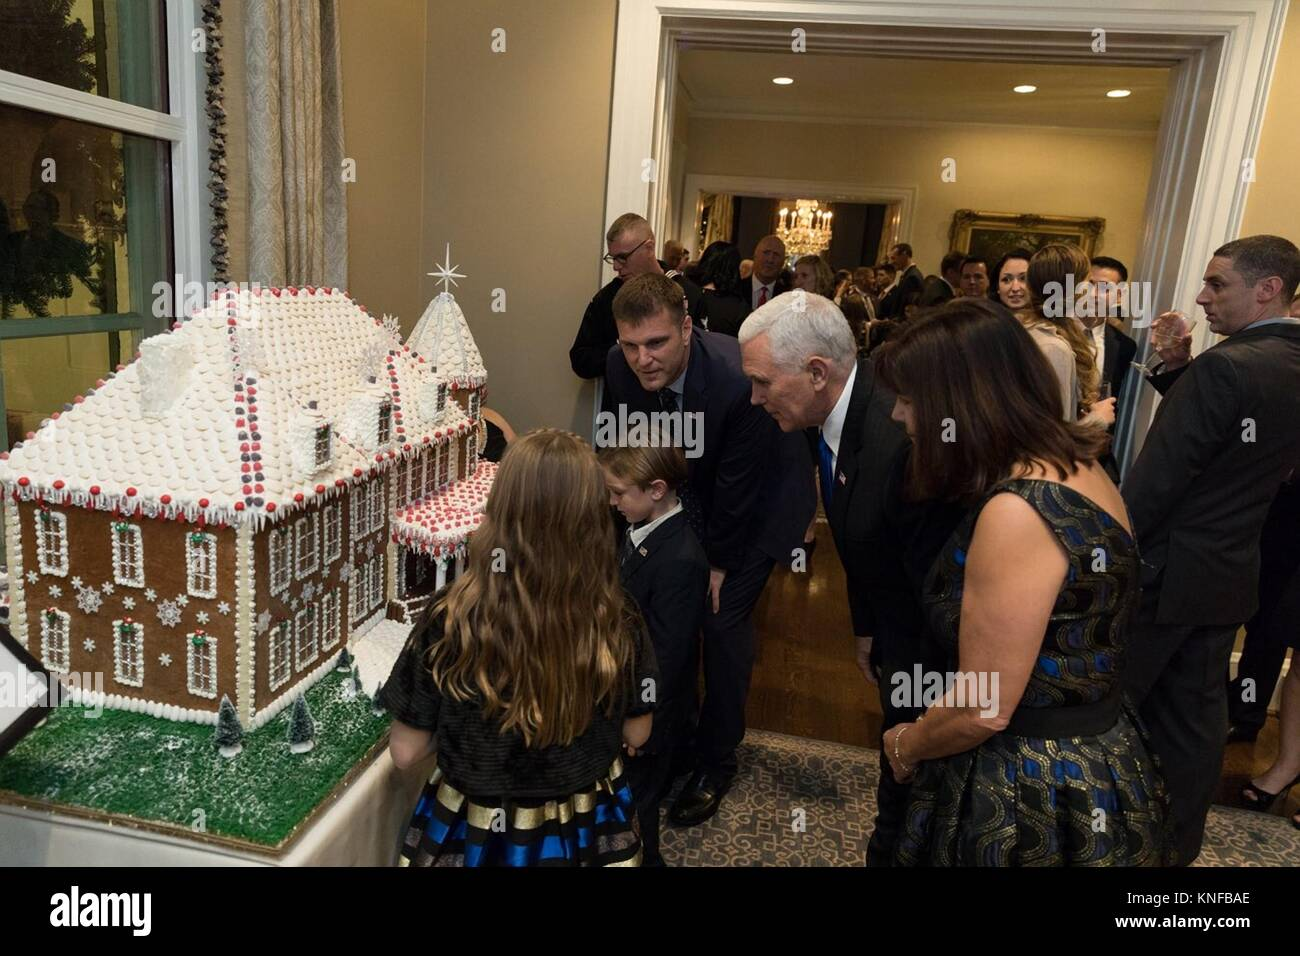 U.S. Vice President Mike Pence and his wife Karen Pence, center, view a gingerbread house with children of United - Stock Image